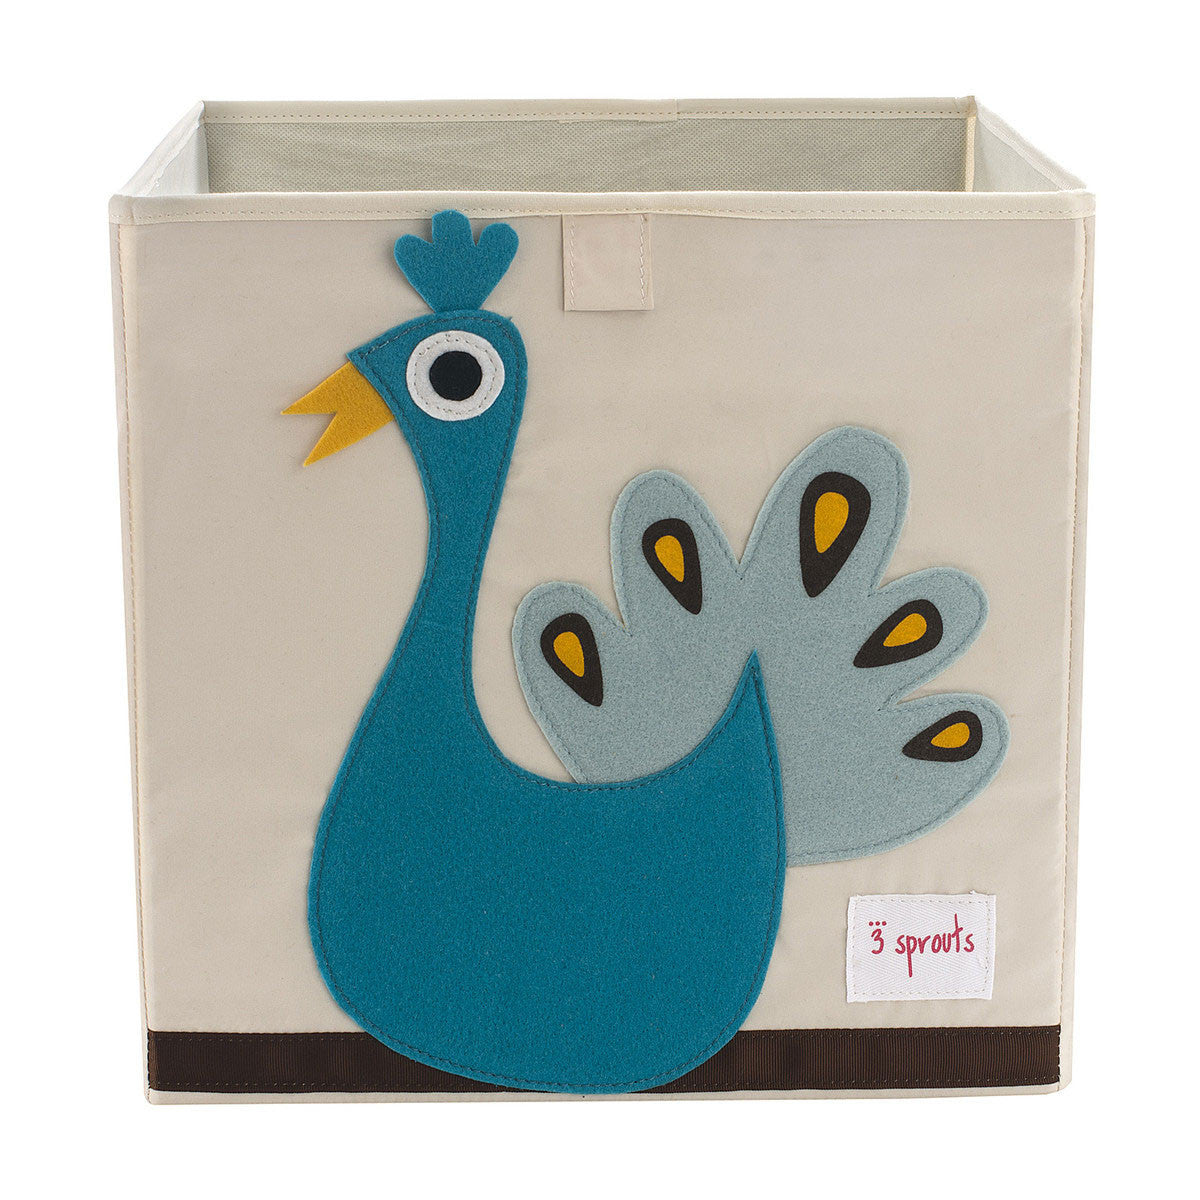 3 Sprouts Storage Box Blue Peacock - DarlingBaby